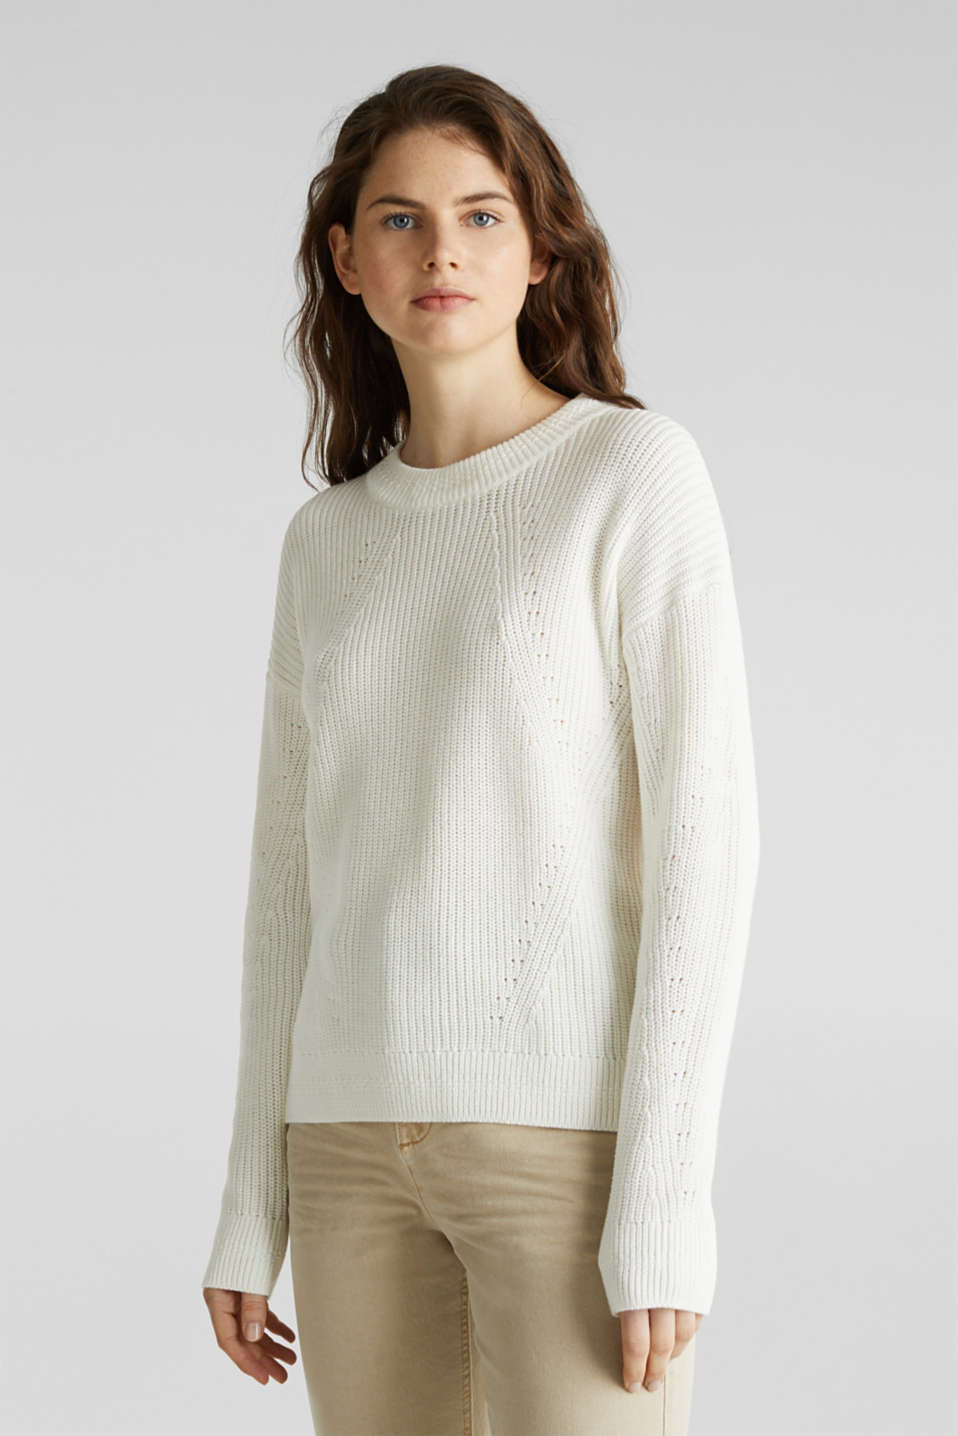 Jumper with textured details, 100% cotton, OFF WHITE, detail image number 6